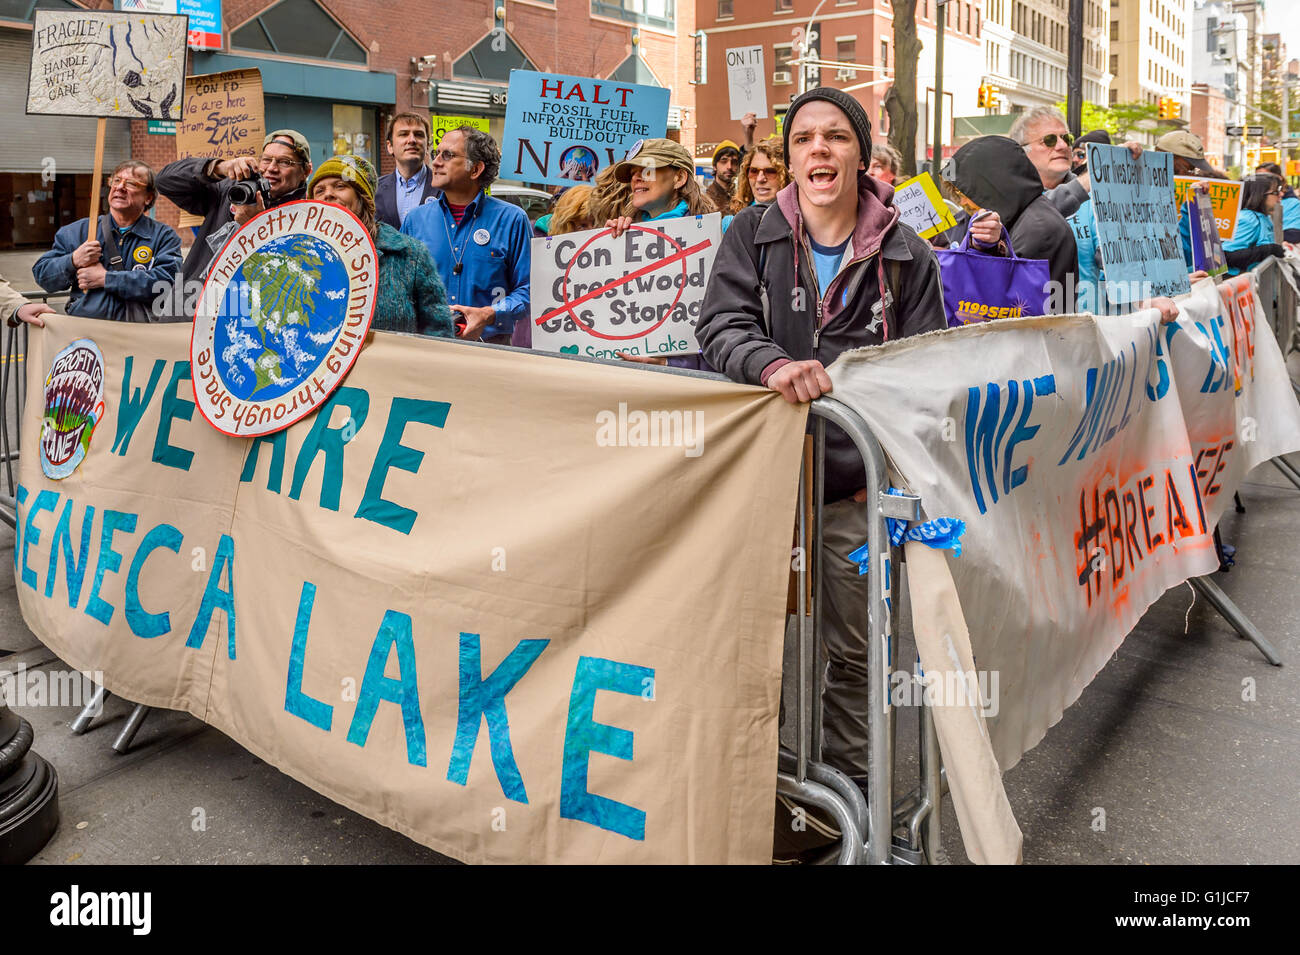 New York, USA. 16th May, 2016. Joined by New York City-based climate and environmental justice advocates, unions, - Stock Image